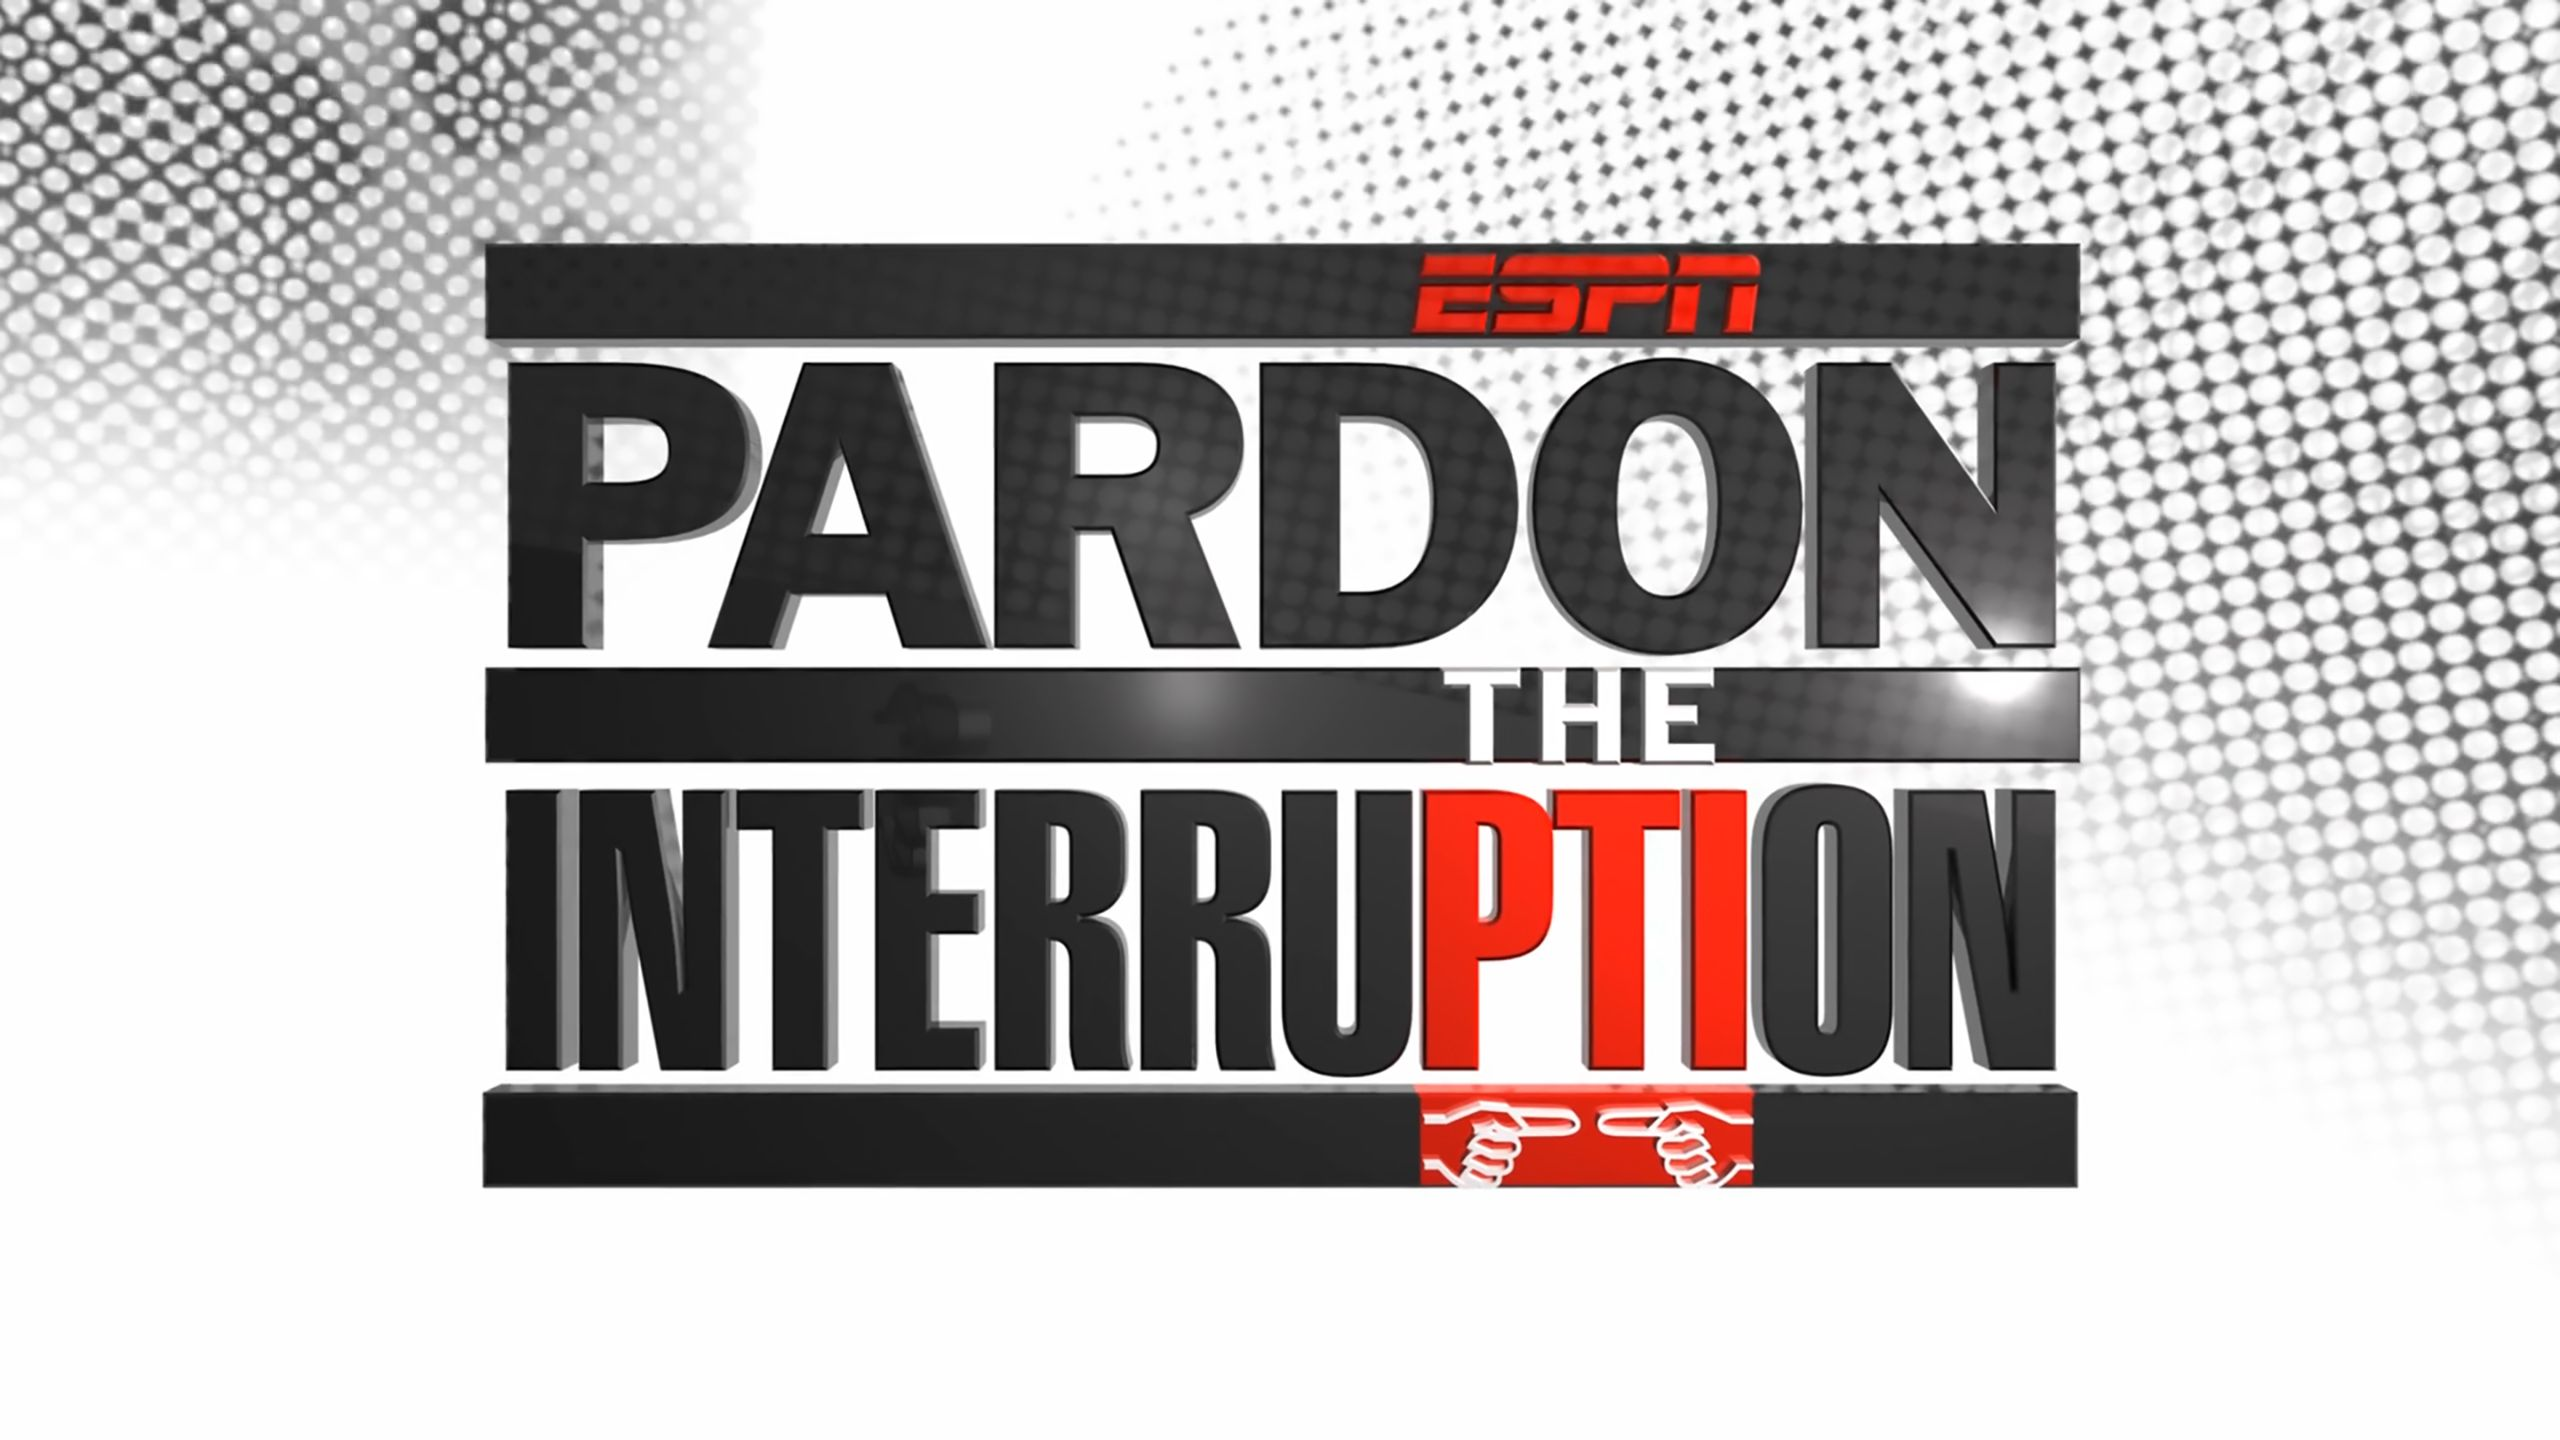 Mon, 4/23 - Pardon The Interruption